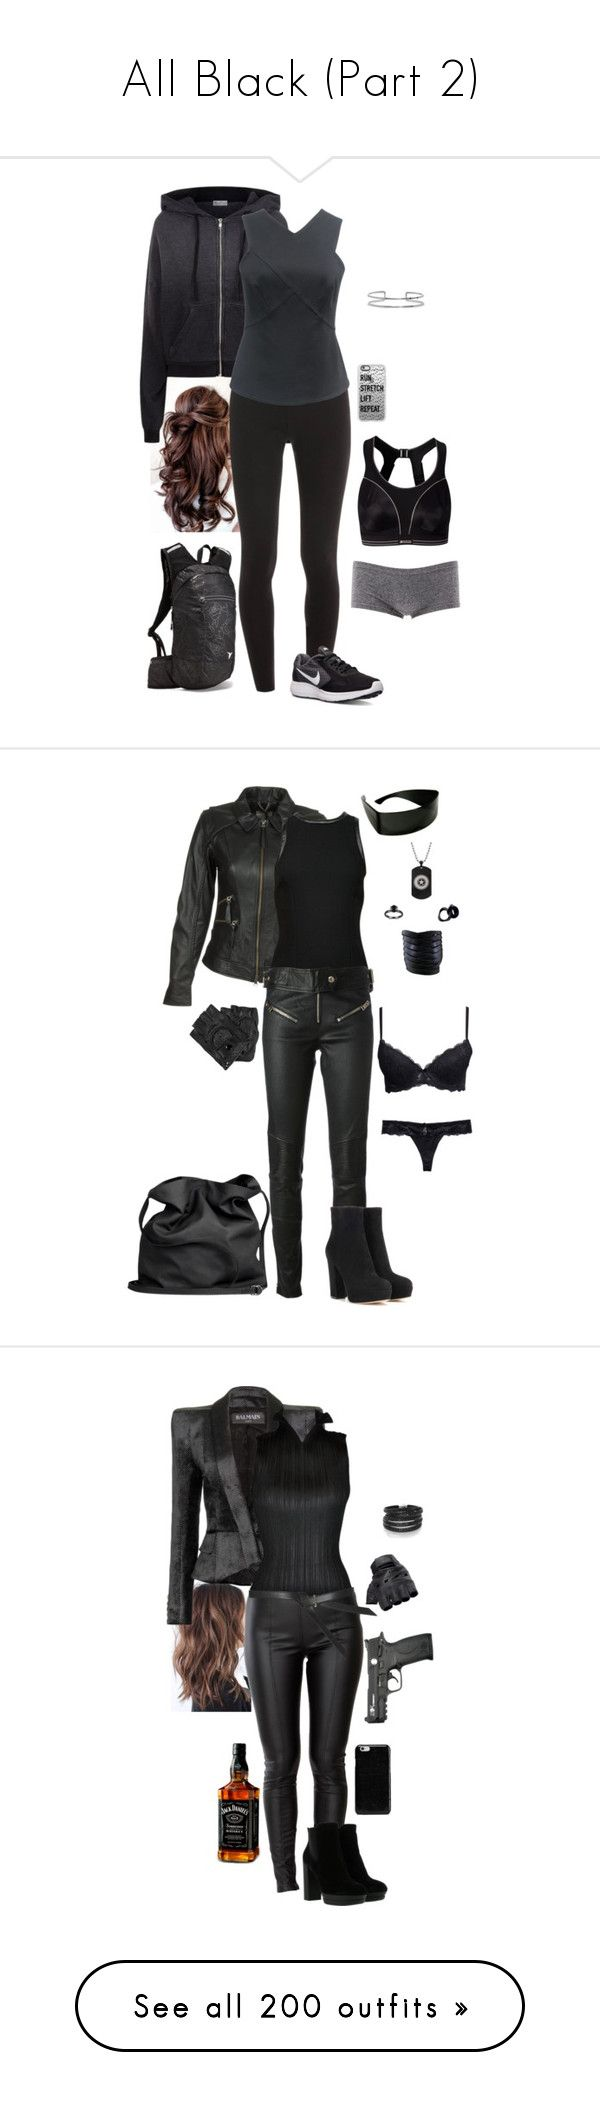 """""""All Black (Part 2)"""" by gone-girl ❤ liked on Polyvore featuring Wildfox, Splendid, Boohoo, NIKE, Shock Absorber, Old Navy, Casetify, Charlotte Russe, Harley-Davidson and Christopher Kane"""